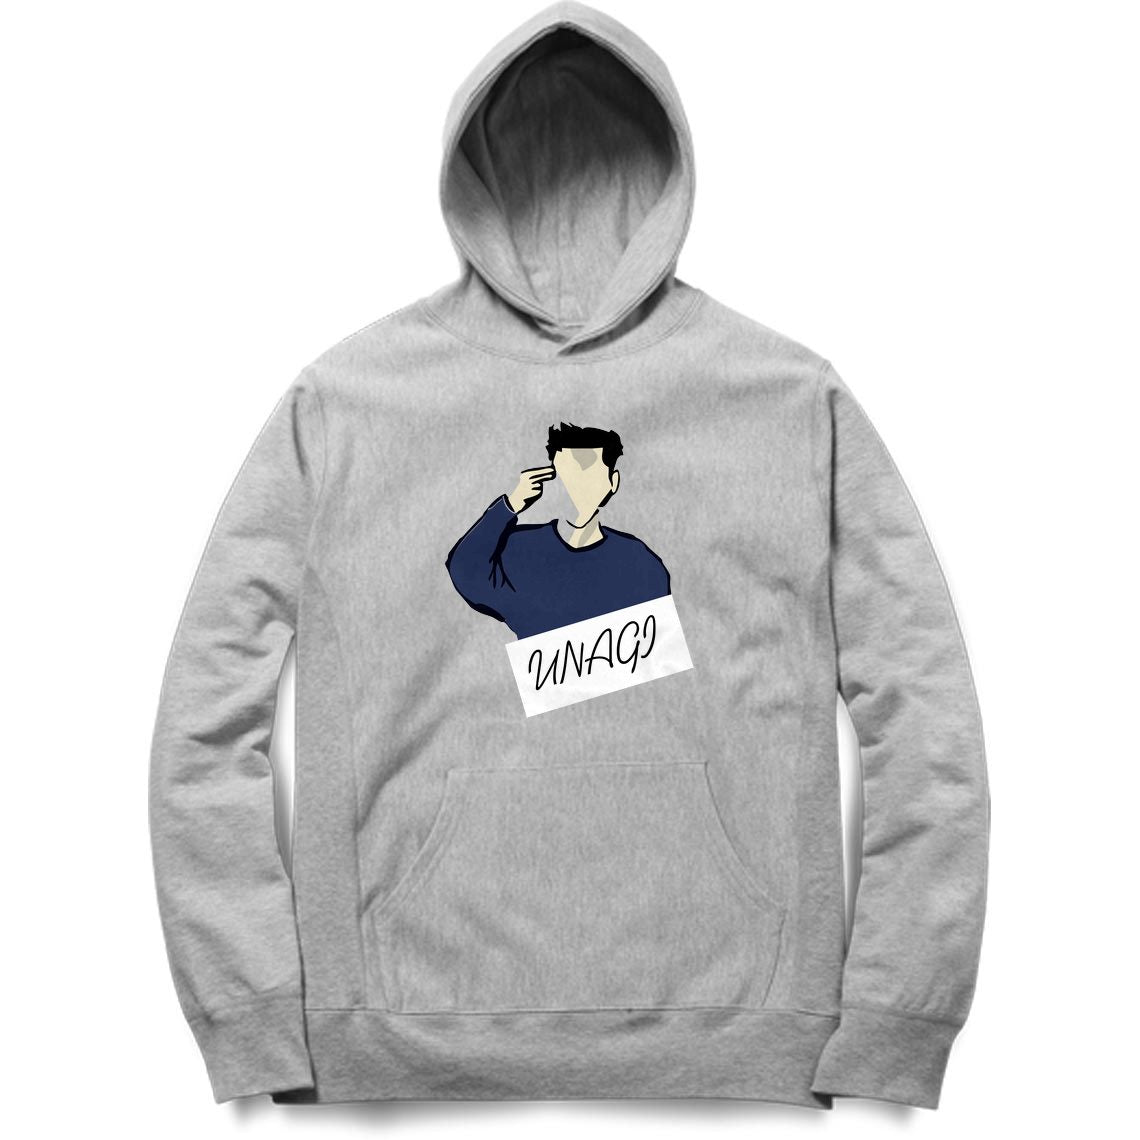 Unagi from Friends TV episode Black, Grey and White Hoodies for Men and Women - SuprCrowd